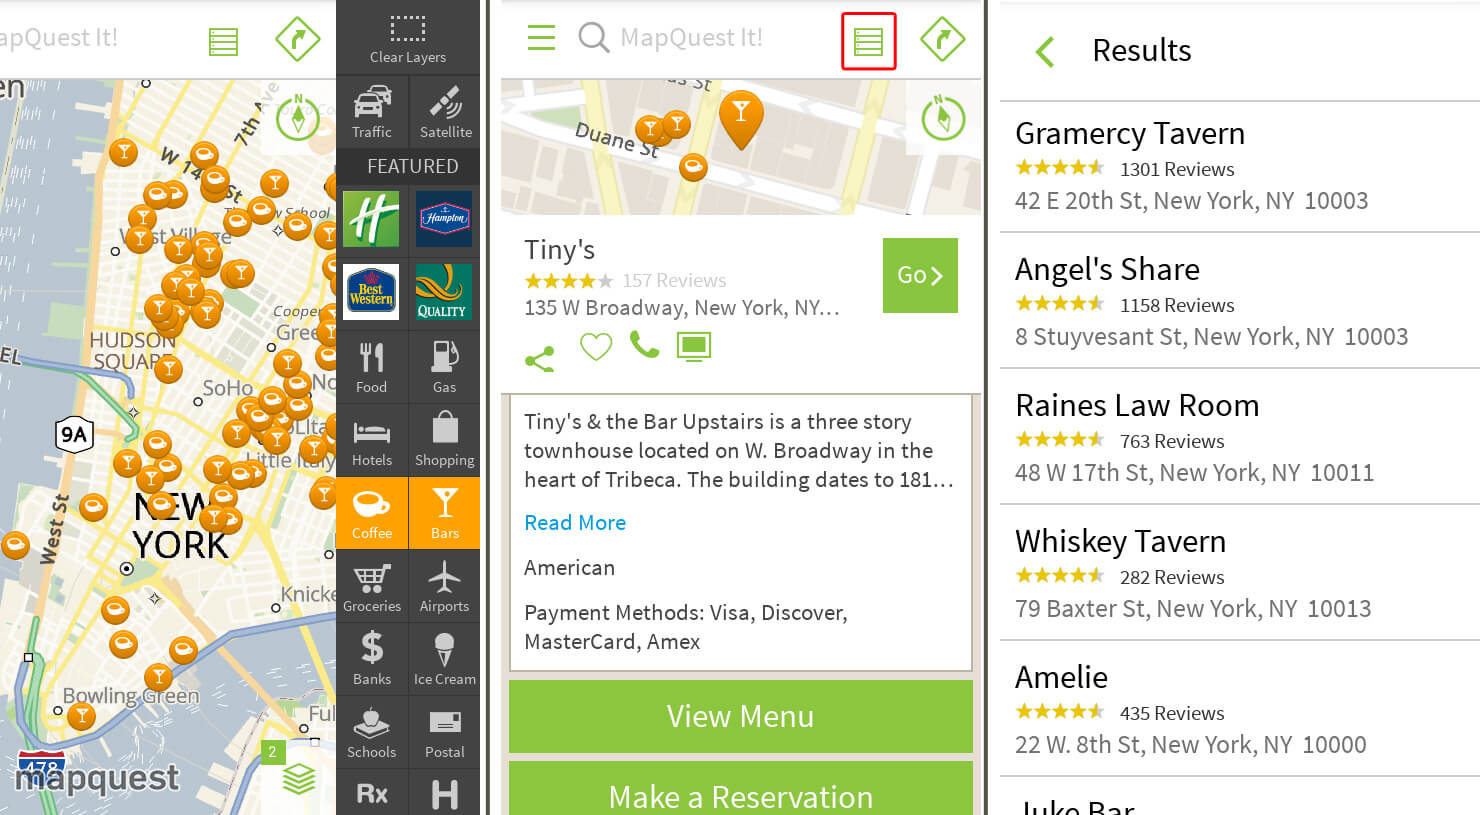 MapQuest Review - Driving Directions, Hotel Bookings & Travel Portal